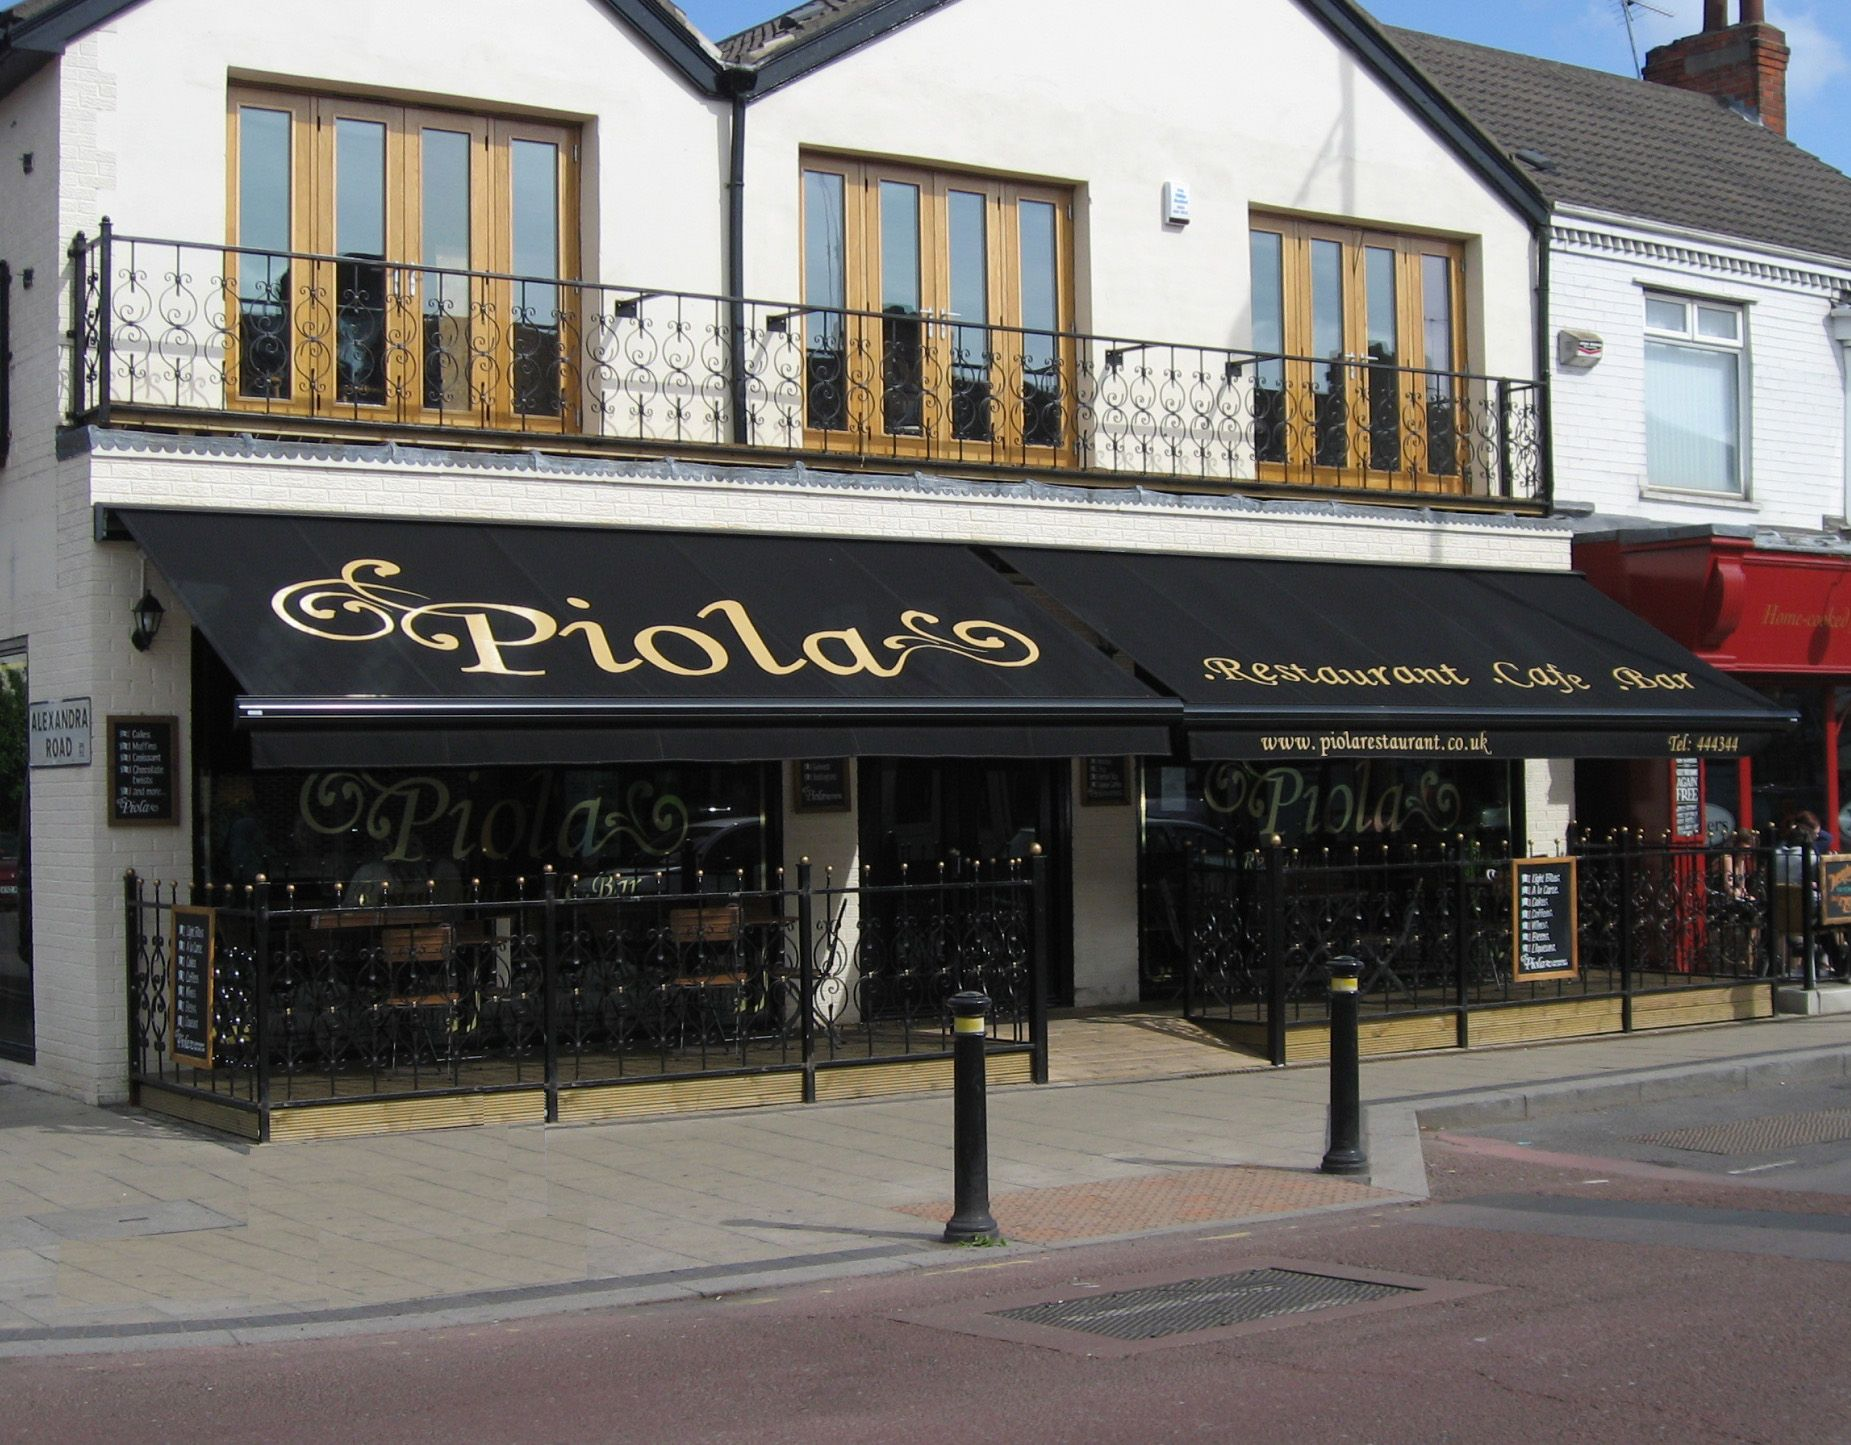 Delightful Piola On Newland Avenue In Kingston Upon Hull. Restaurant Awnings To Cover  Outdoor Seating